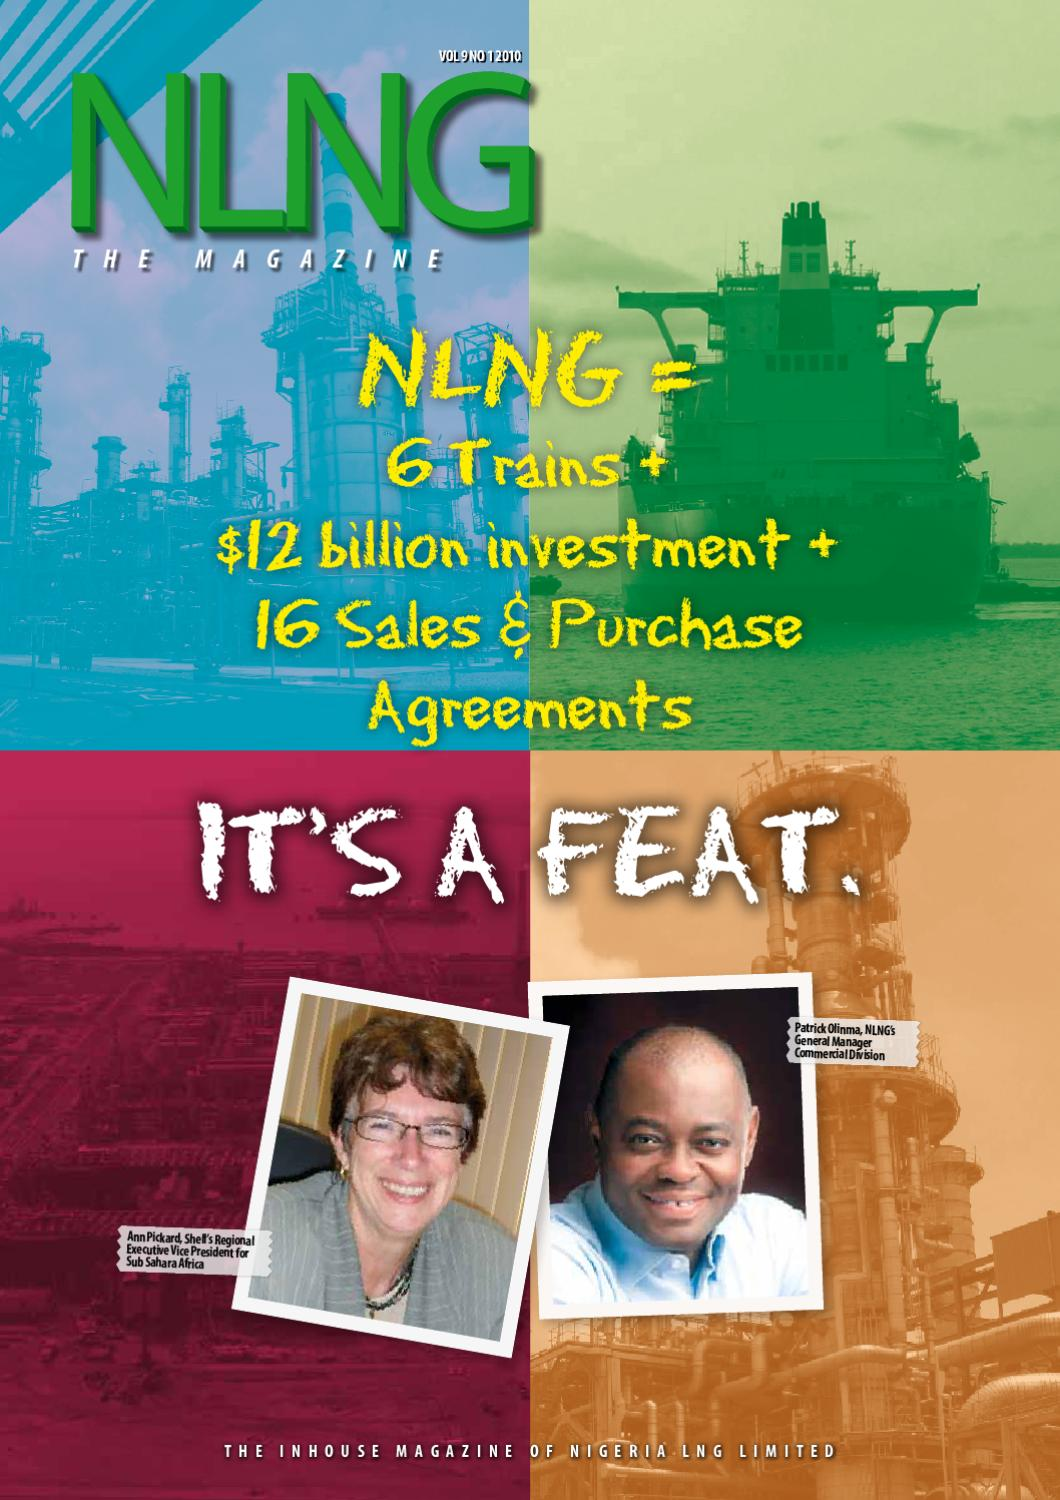 NLNG - The Magazine 2010 Edition 1 by Nigeria LNG Limited